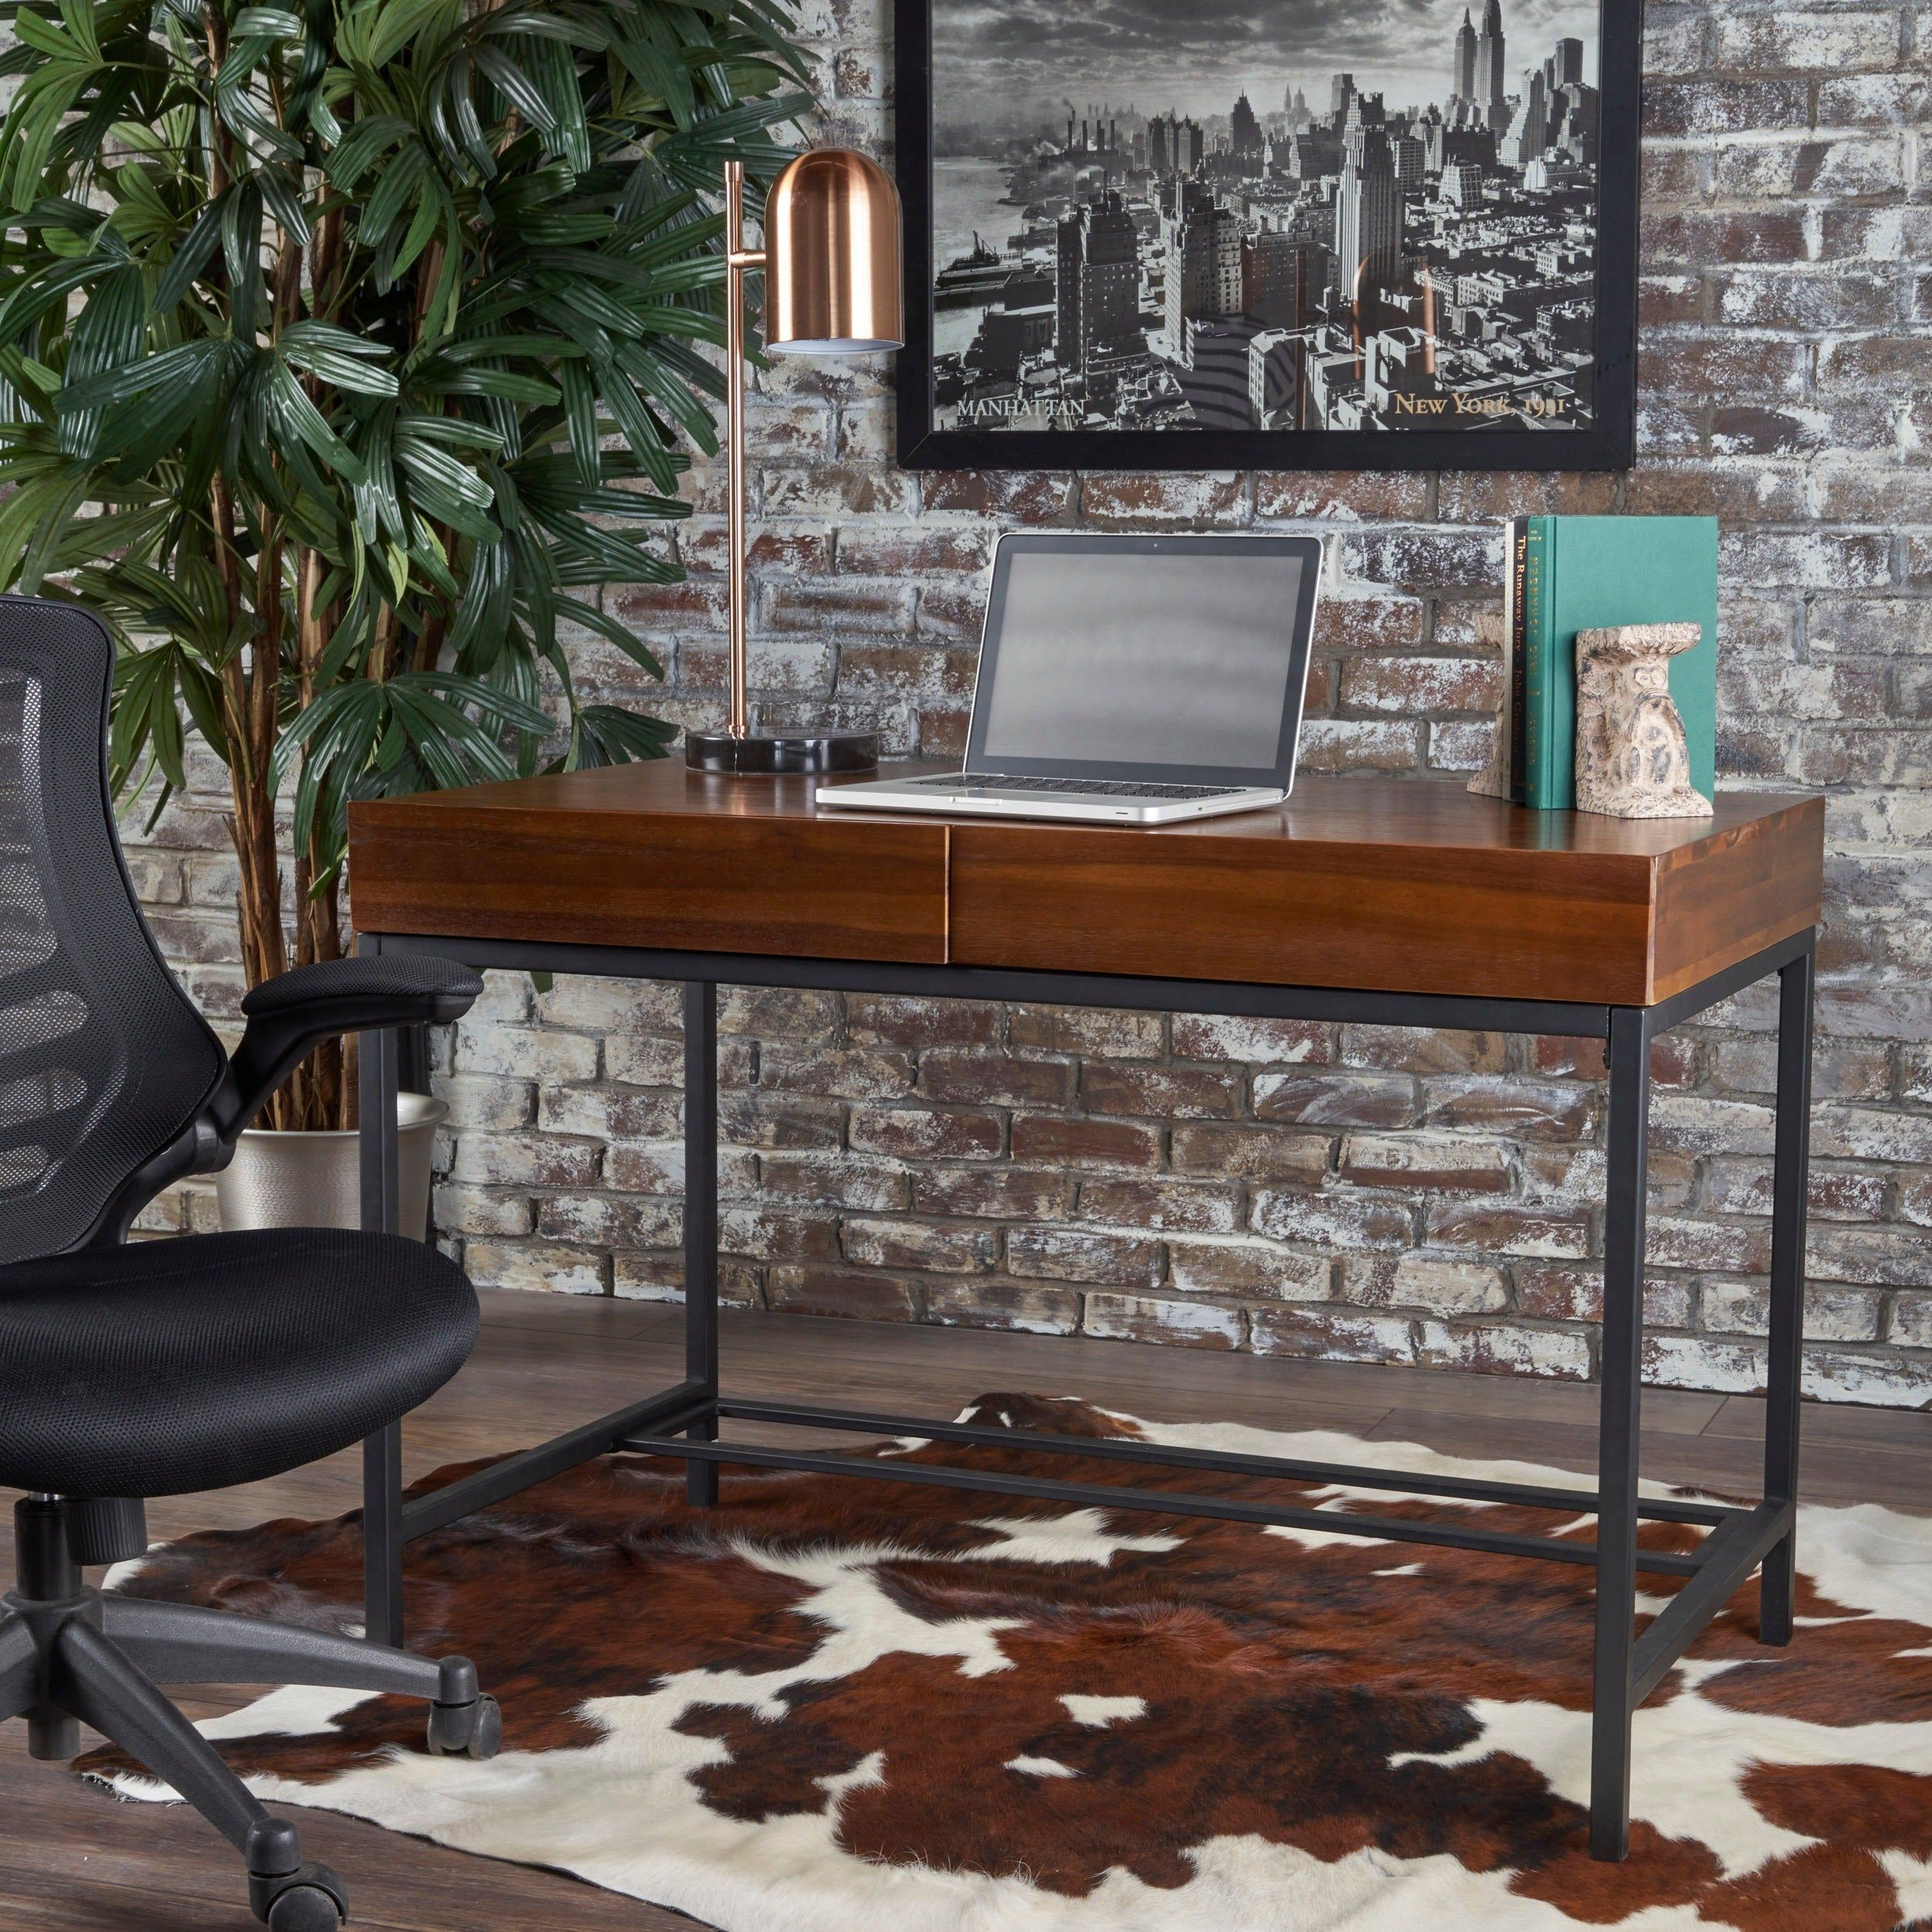 Shop ebany industrial acacia wood storage desk by christopher knight home on sale free shipping today overstock com 17778369